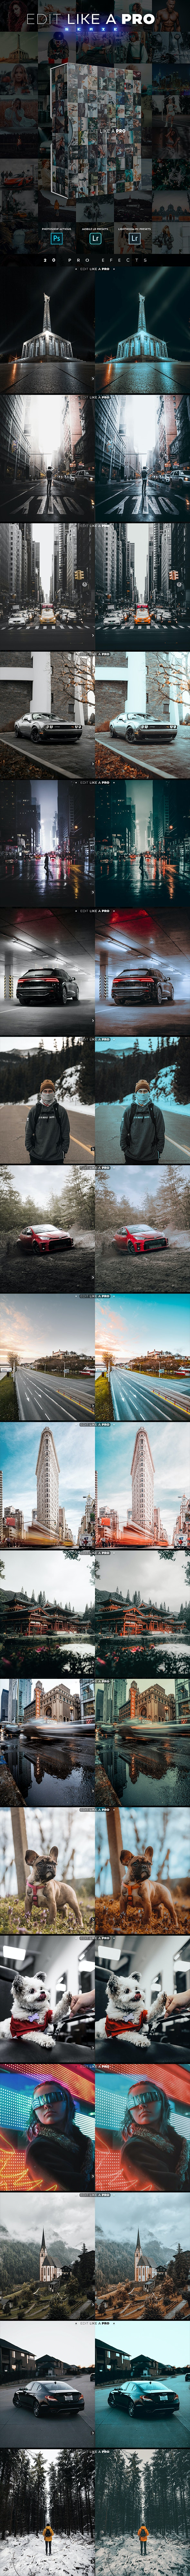 Edit Like A Pro Serie - Photoshop & Lightroom Effects - Photo Effects Actions